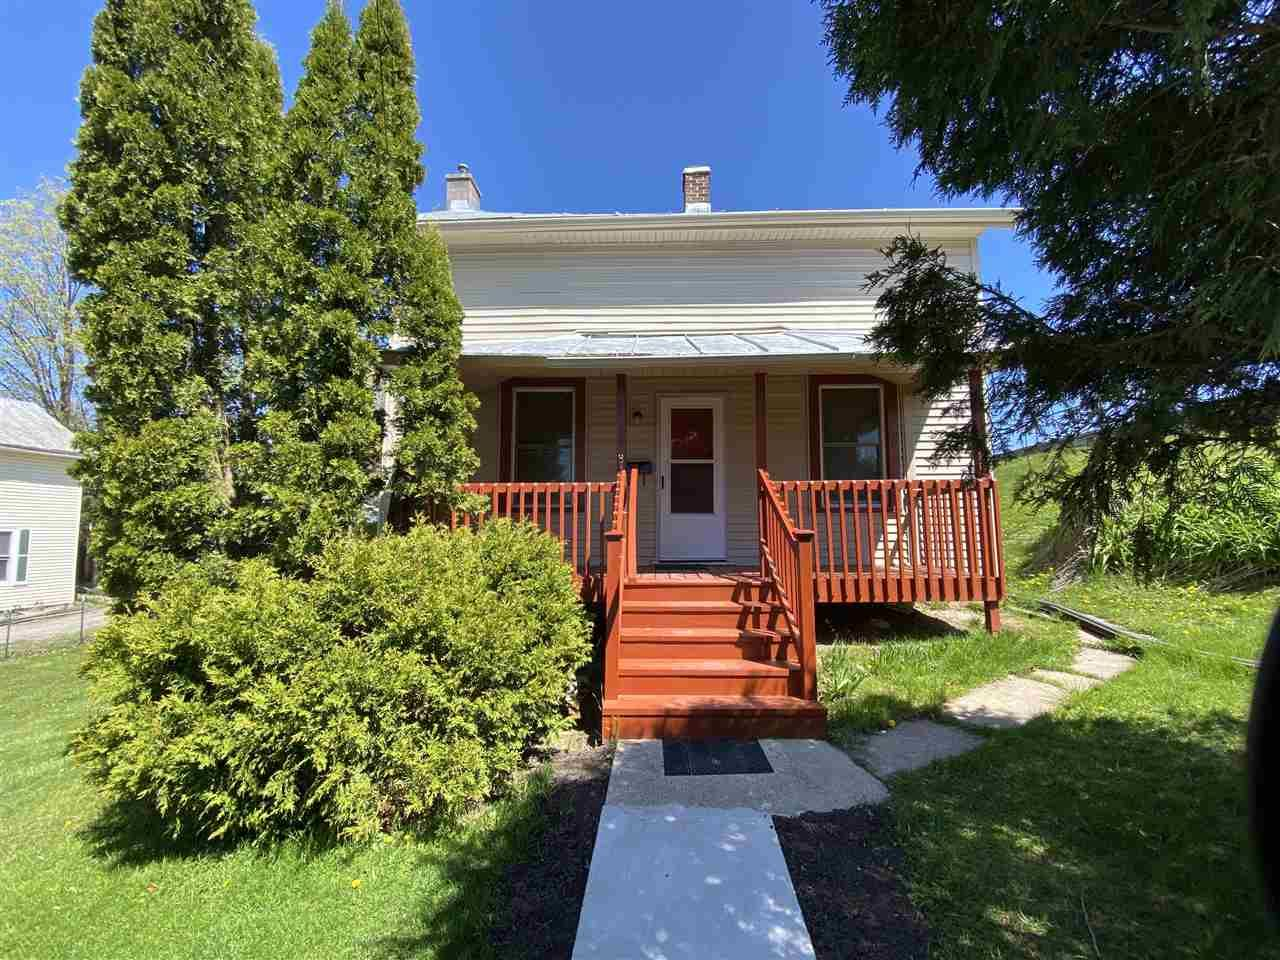 218 1st Ave, Baraboo, WI 53913 - #: 1883130